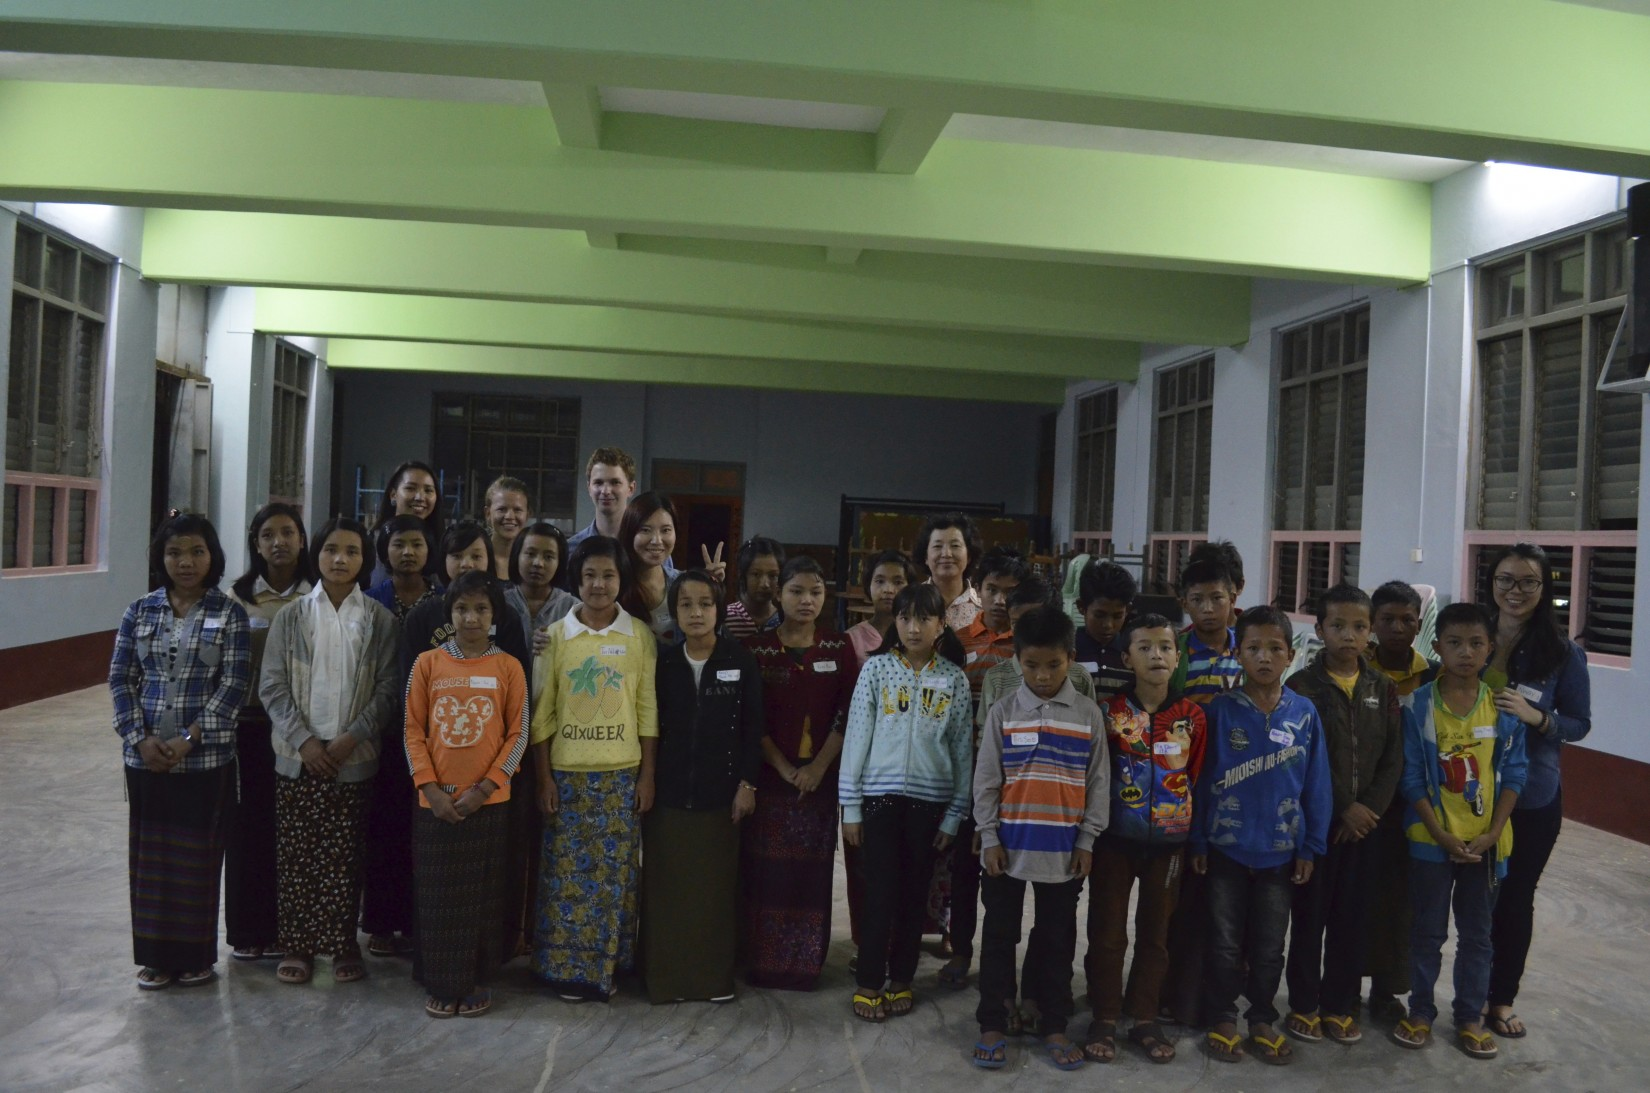 2014 100 Projects for Peace winners Sam Shugart, Nway Khine, Irada Yeap, and Katie Schirmer with their students in Taunggyi, Myanmar during summer 2014.